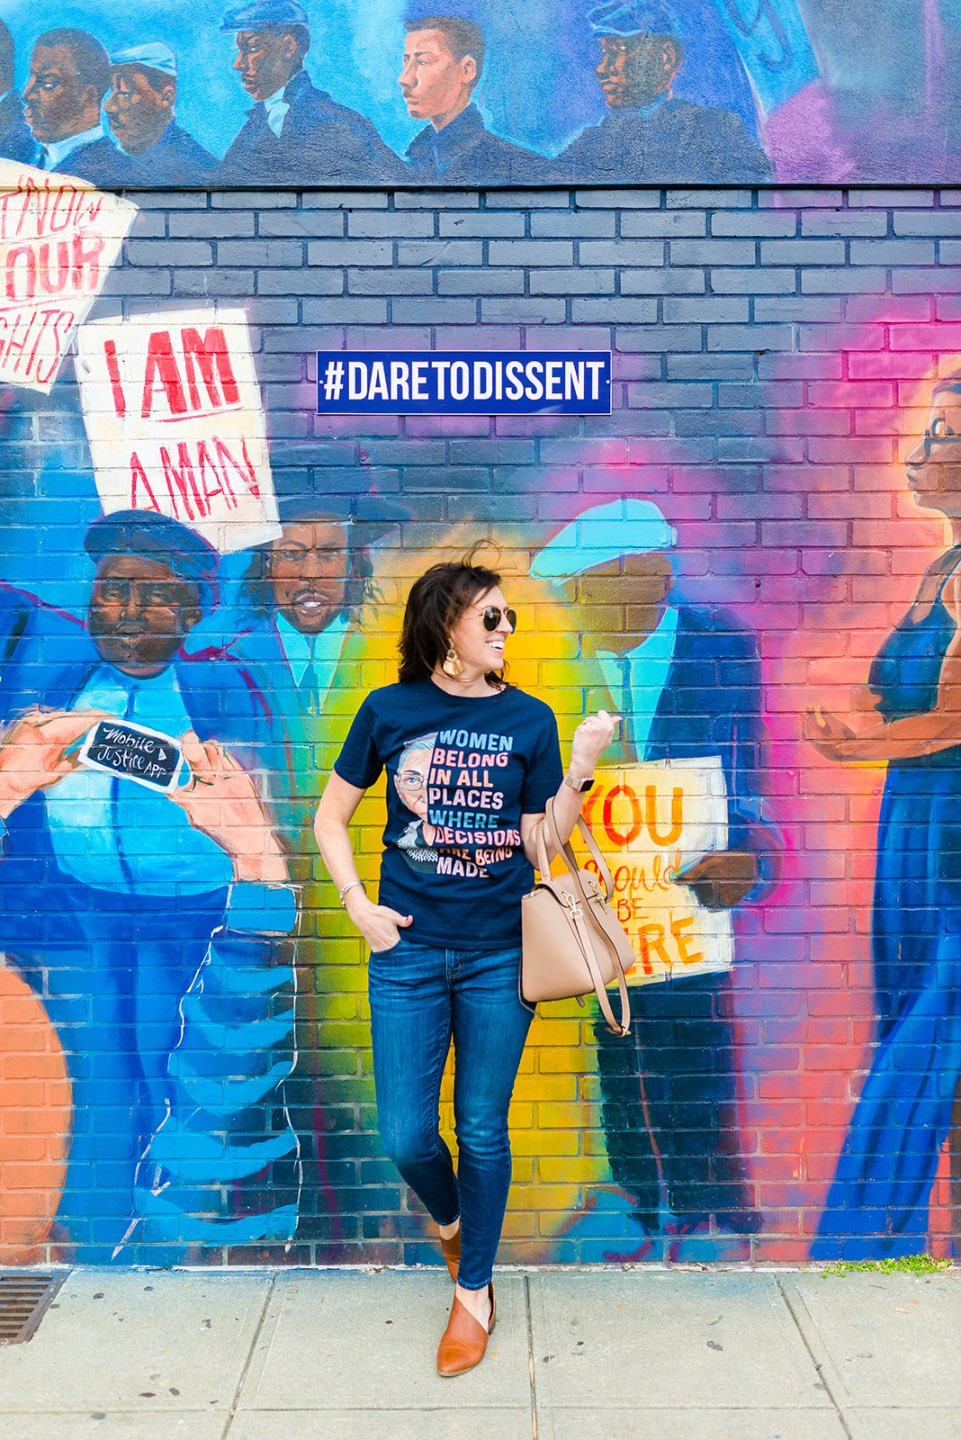 How to Make Social Change by popular North Carolina lifestyle blog, I'm Fixin' To: image of a woman wearing a Ruth Bader Ginsburg t-shirt and standing in front of a #daretodissent wall mural.